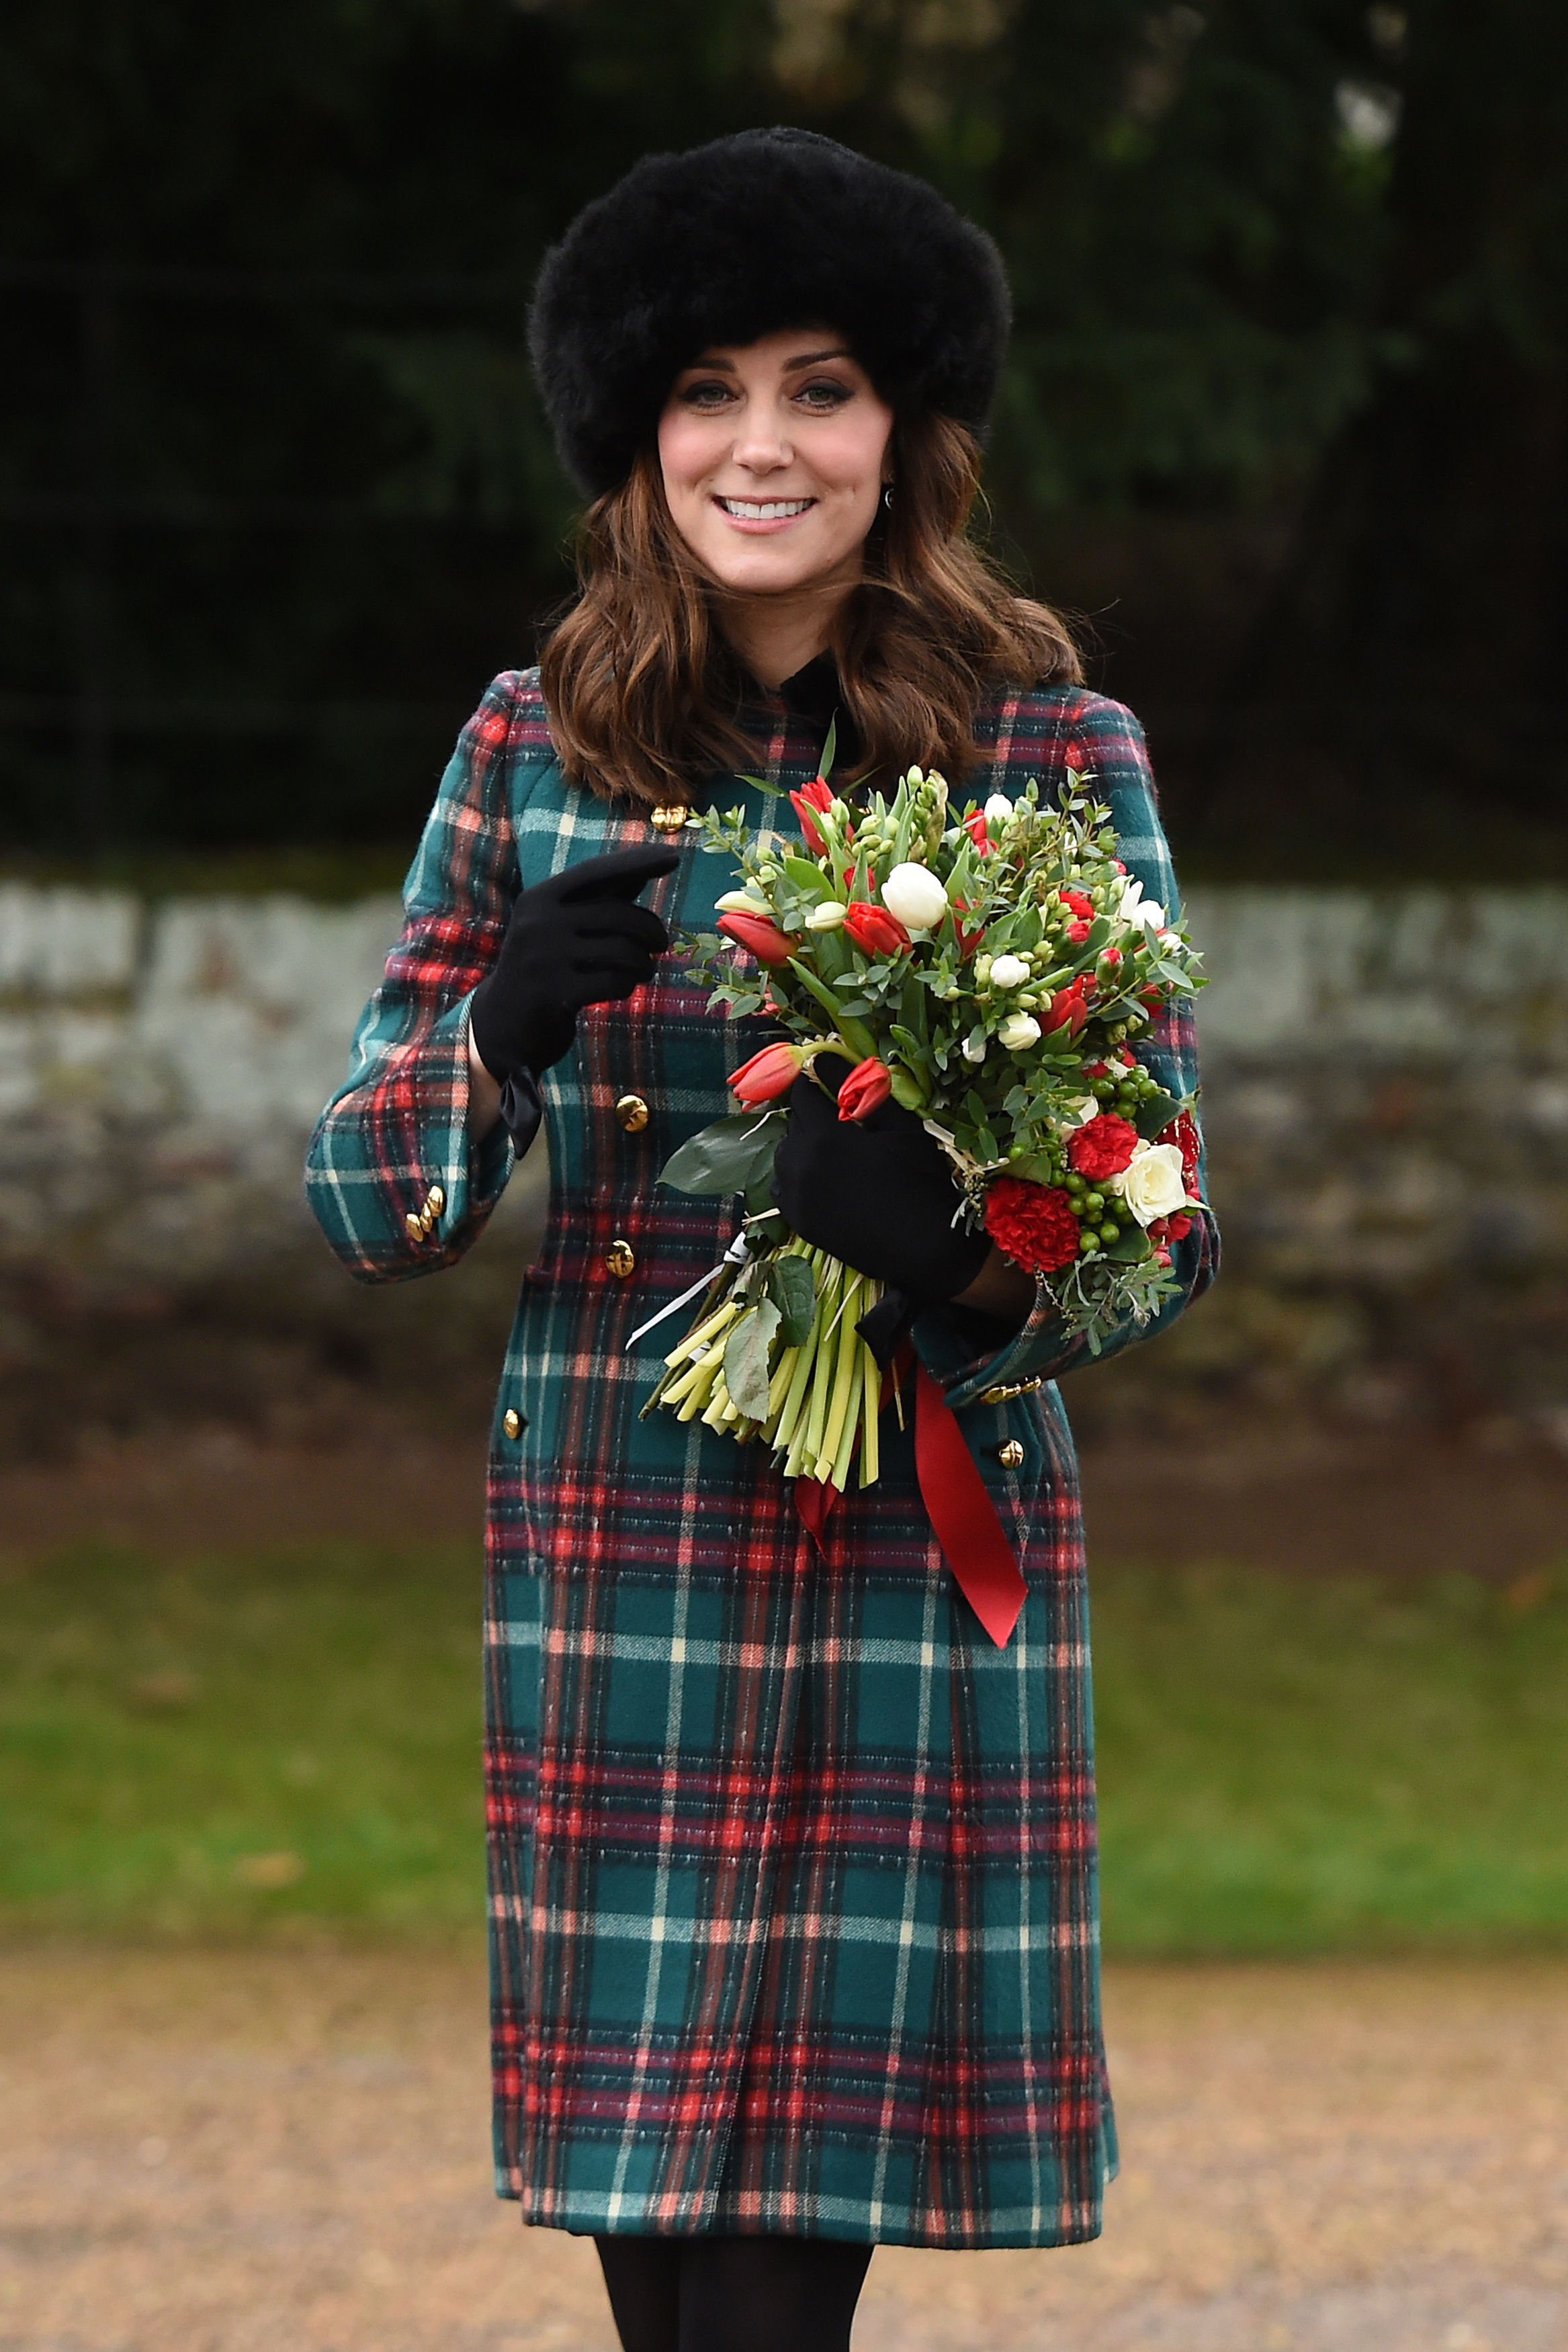 The Duchess of Cambridge leaves the Christmas Day morning church service at St Mary Magdalene Church in Sandringham, Norfolk., Image: 358603846, License: Rights-managed, Restrictions: , Model Release: no, Credit line: Profimedia, Press Association